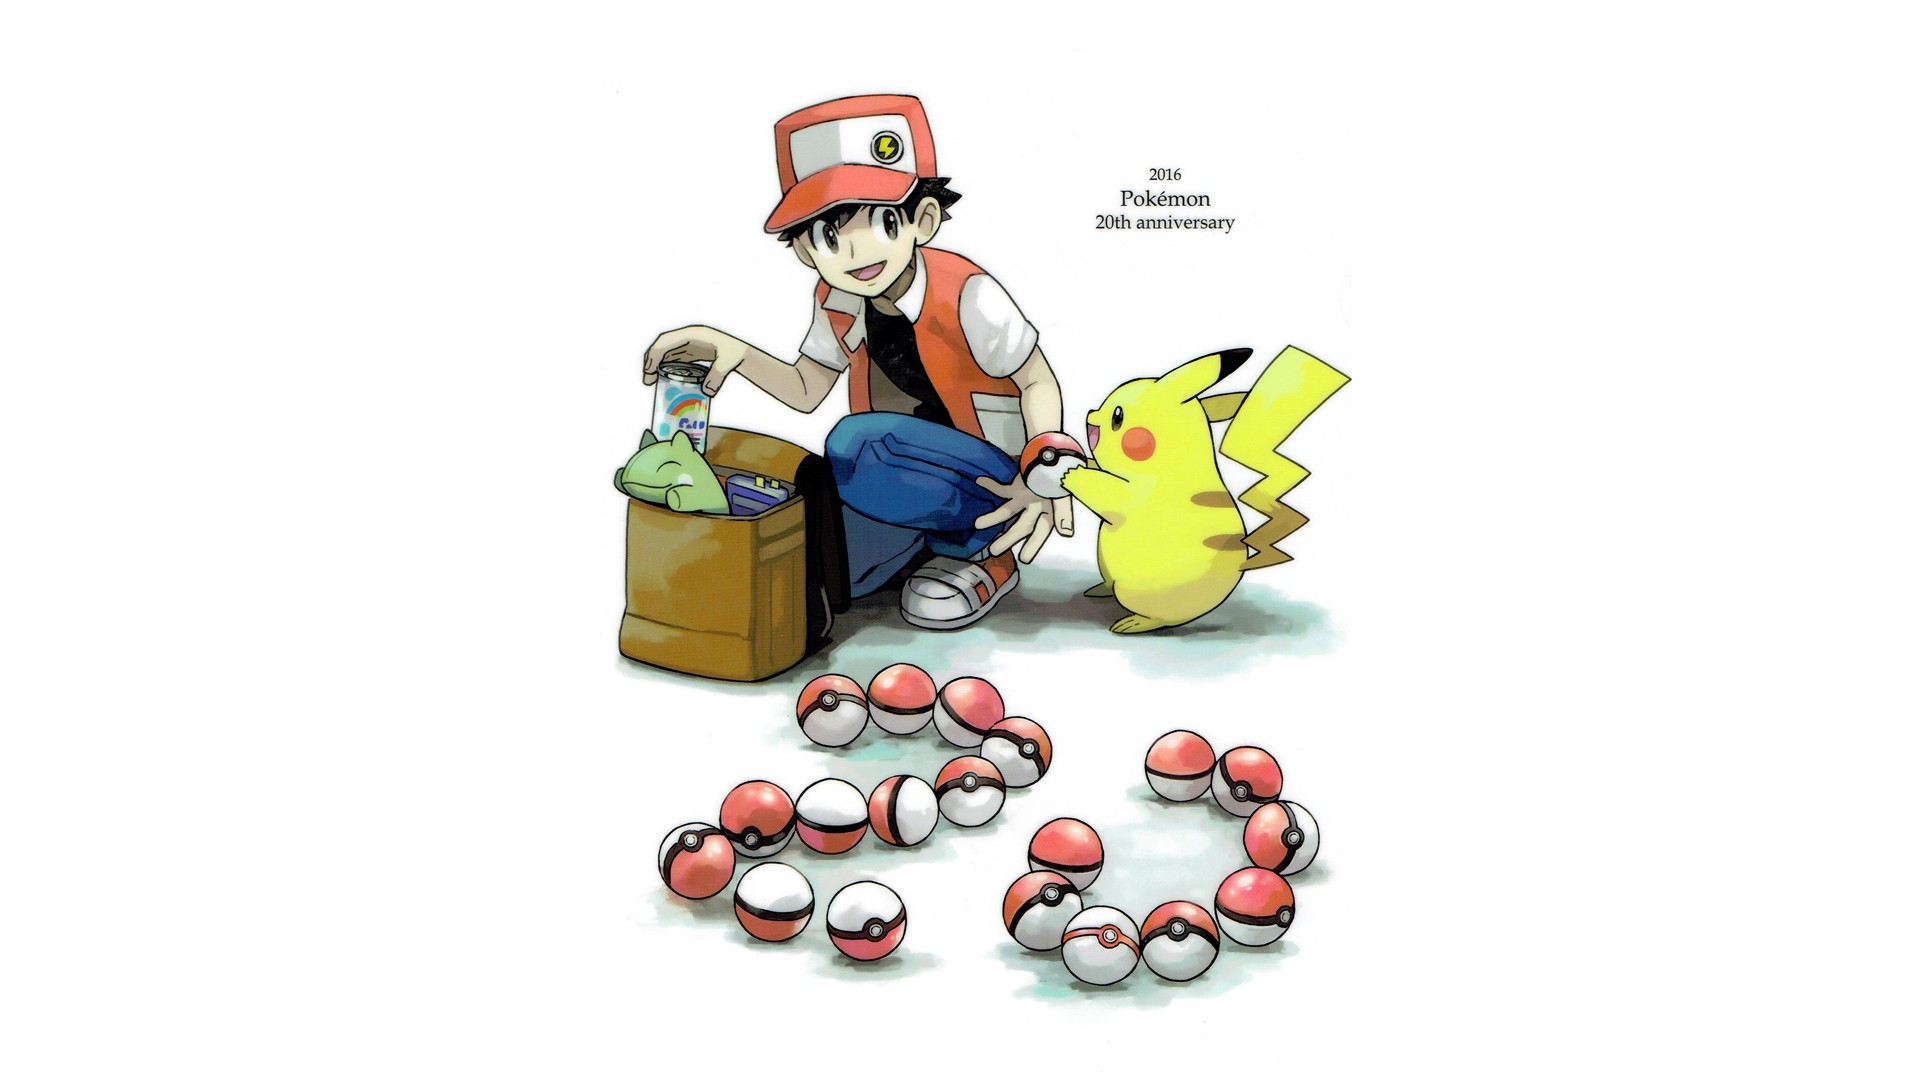 Cute Marshmallow Wallpapers For Iphone Pokemon 20th Anniversary Hd Wallpaper Background Image